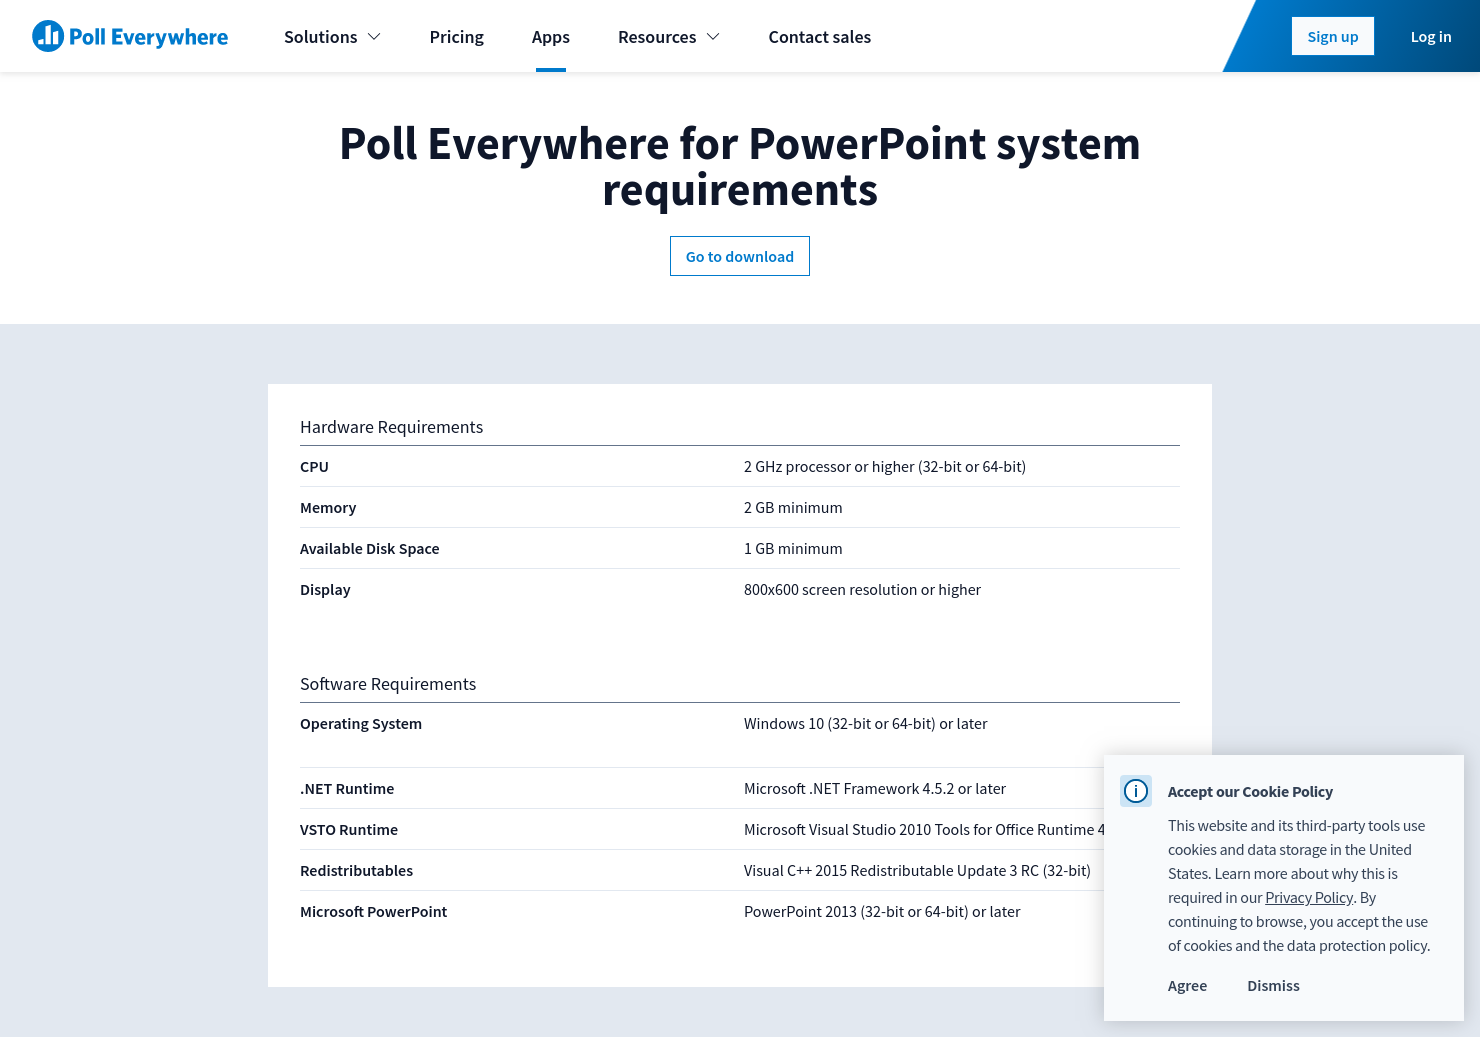 Poll Everywhere for PowerPoint system requirements | Poll